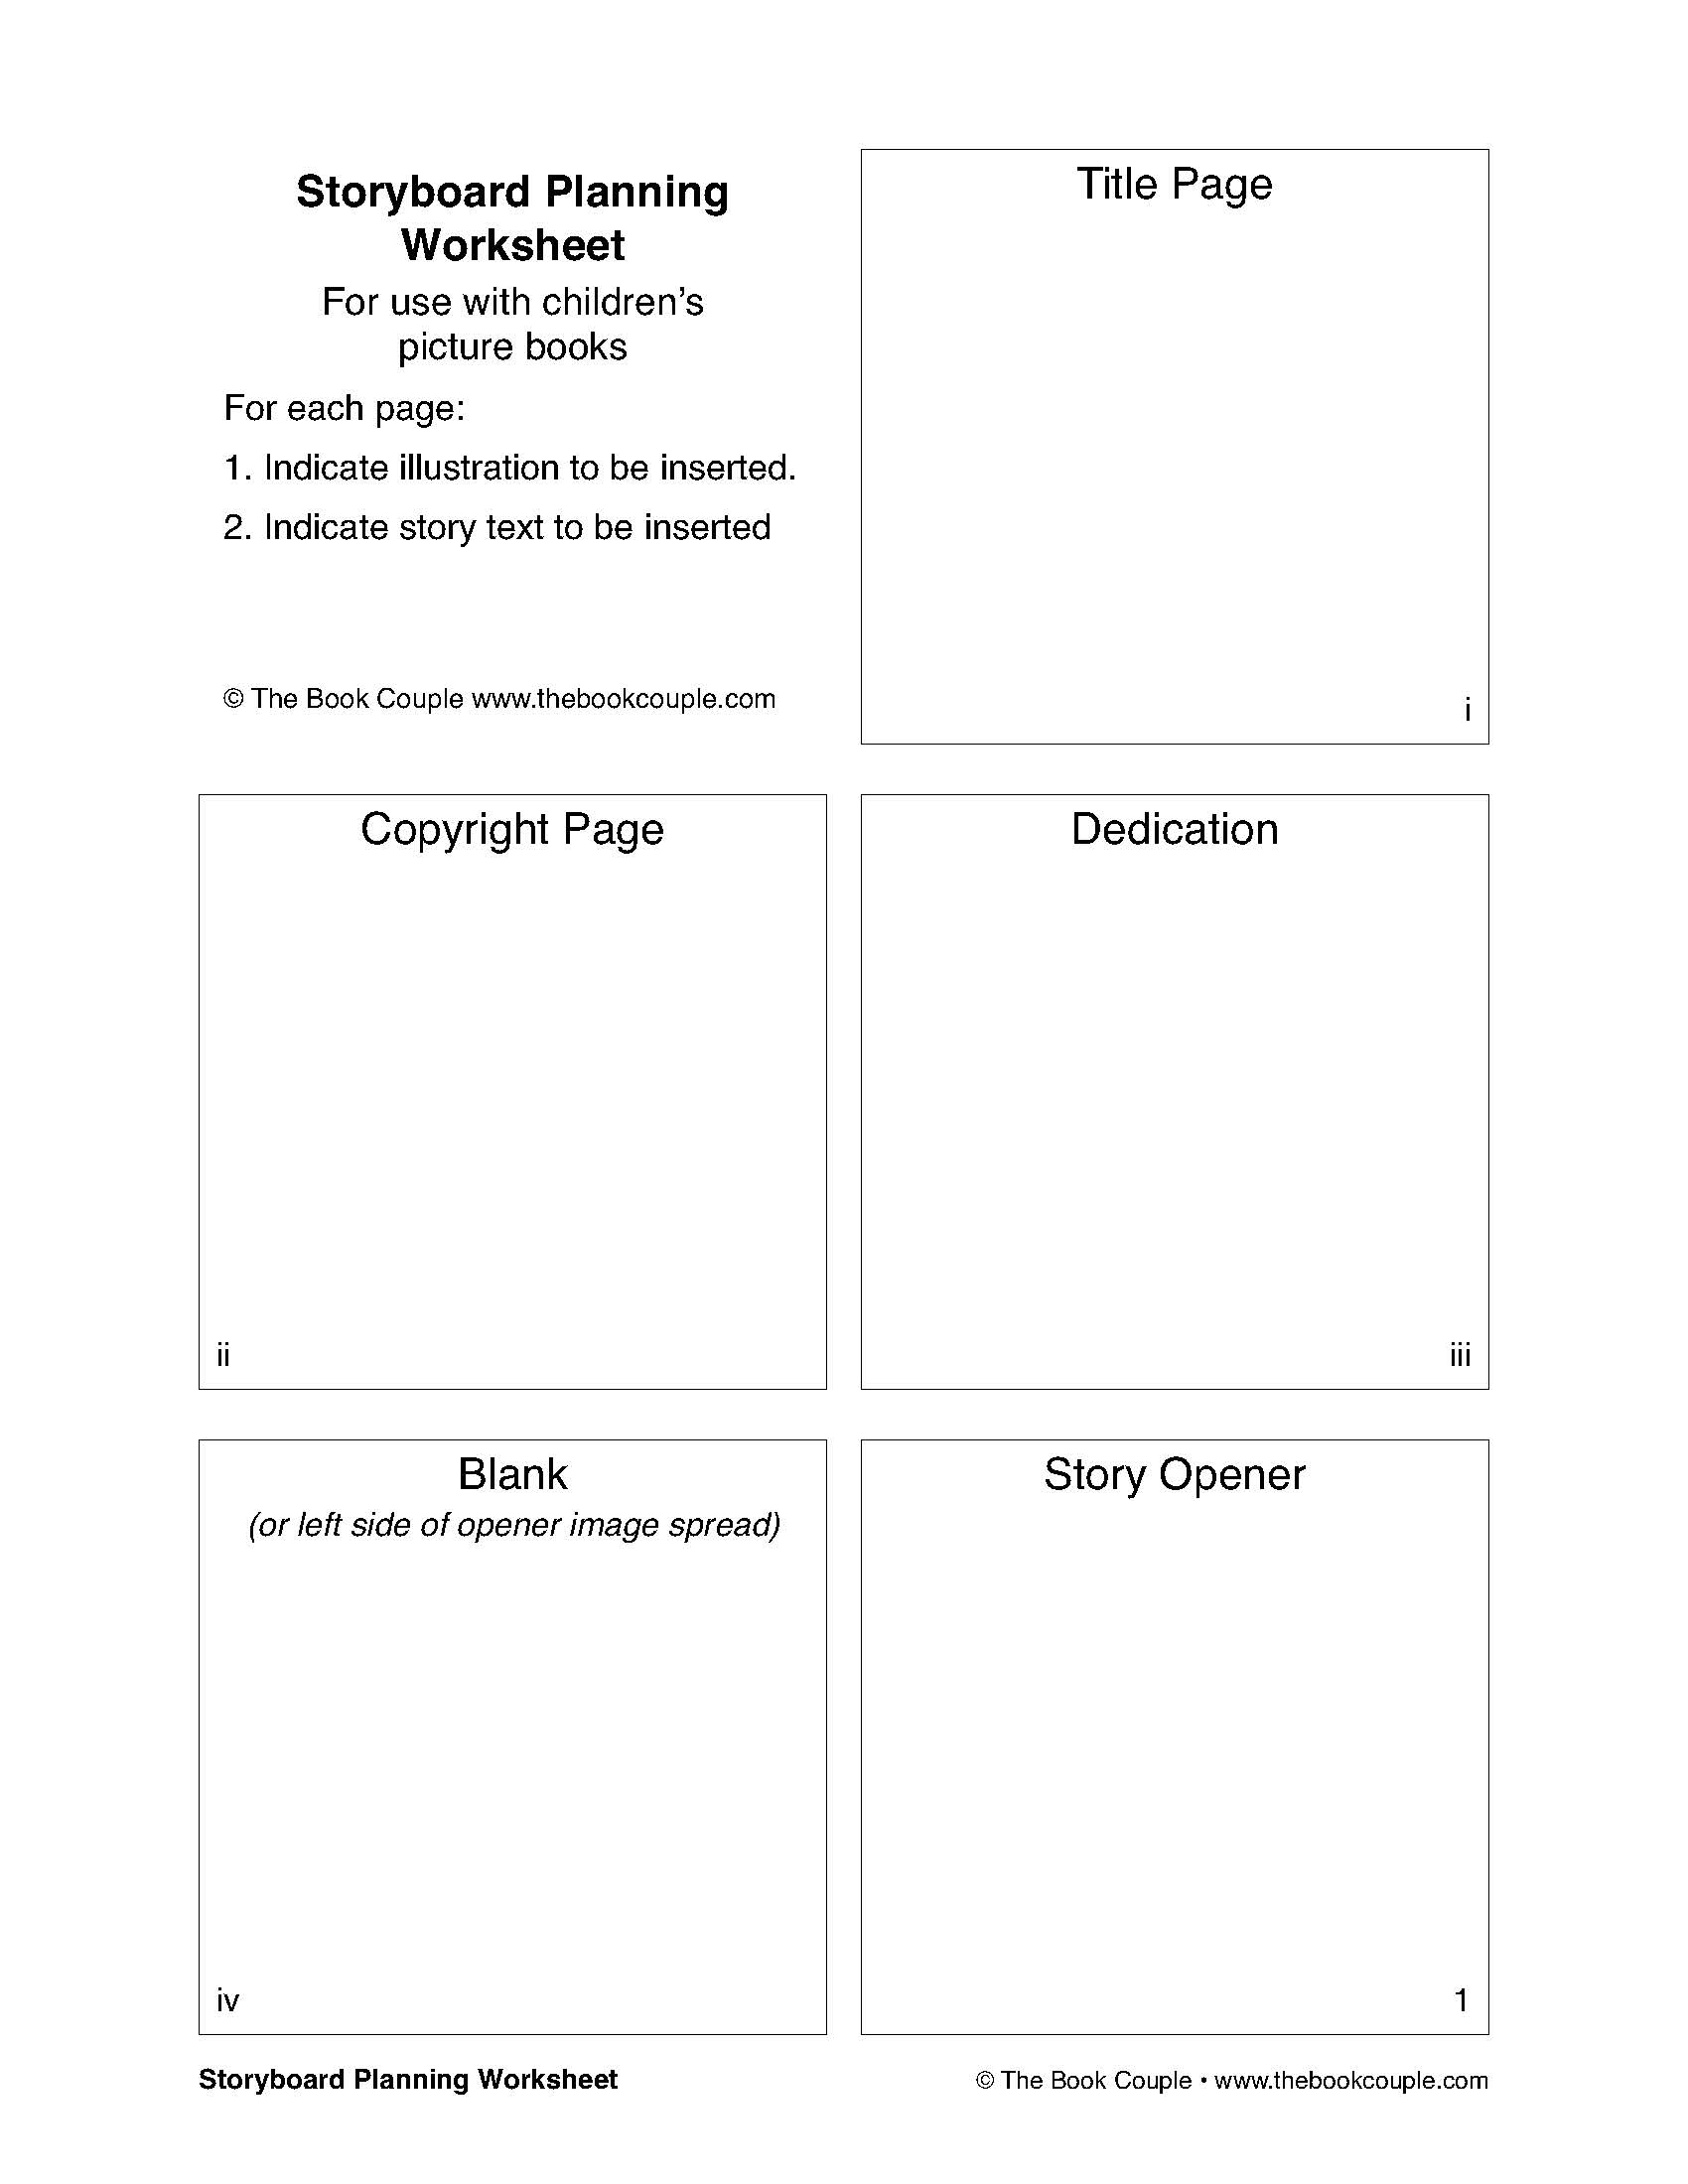 Storyboard Planning Worksheet For Use With Children's